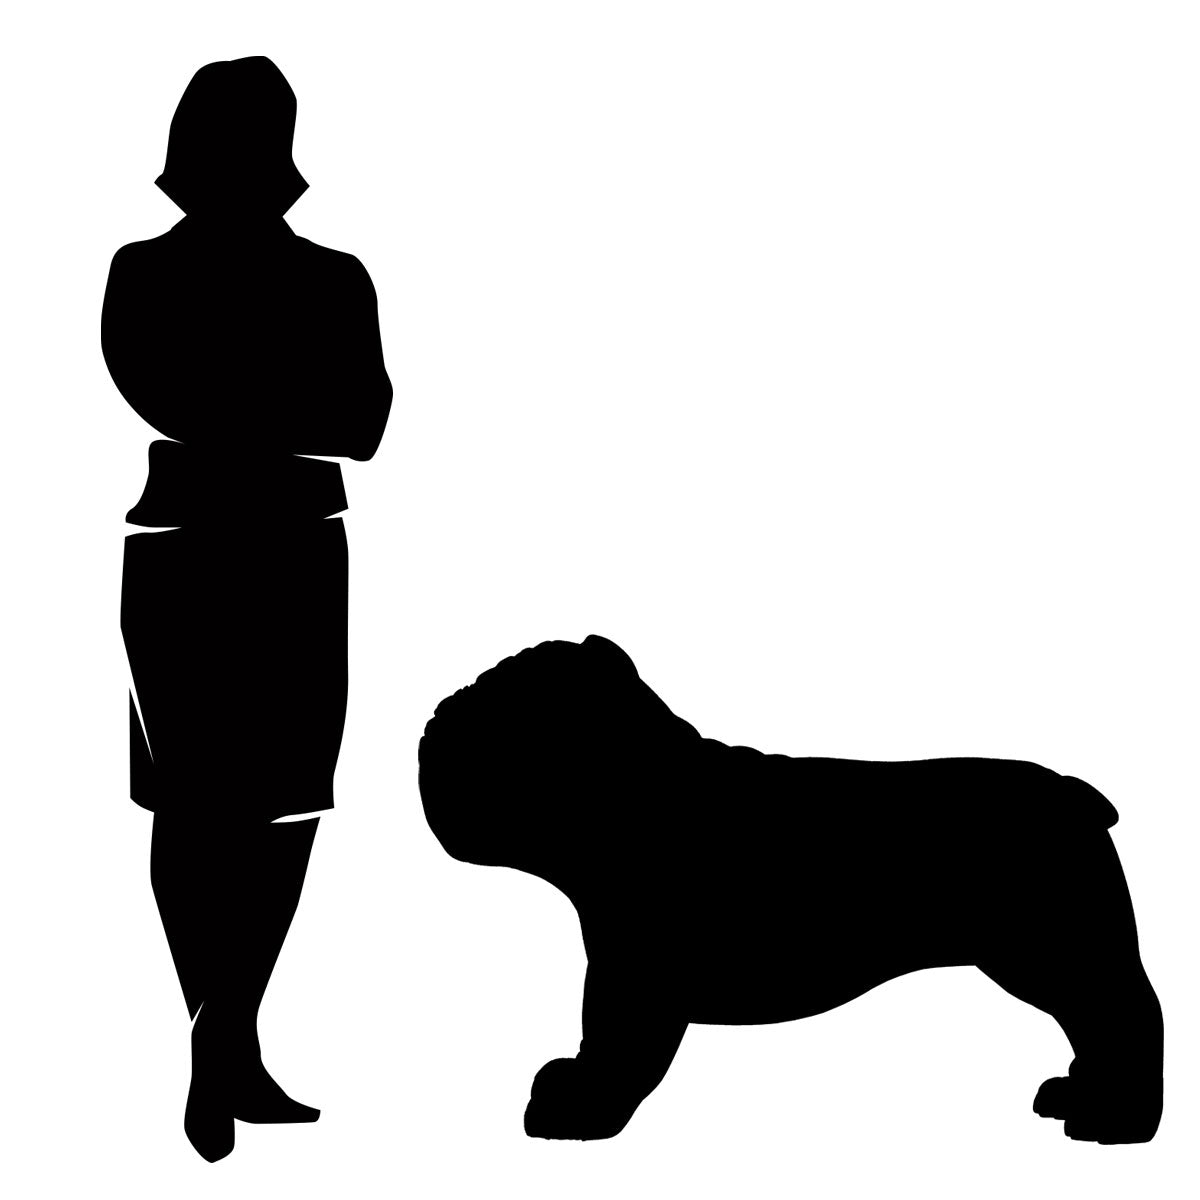 Bulldog size comparison diagram